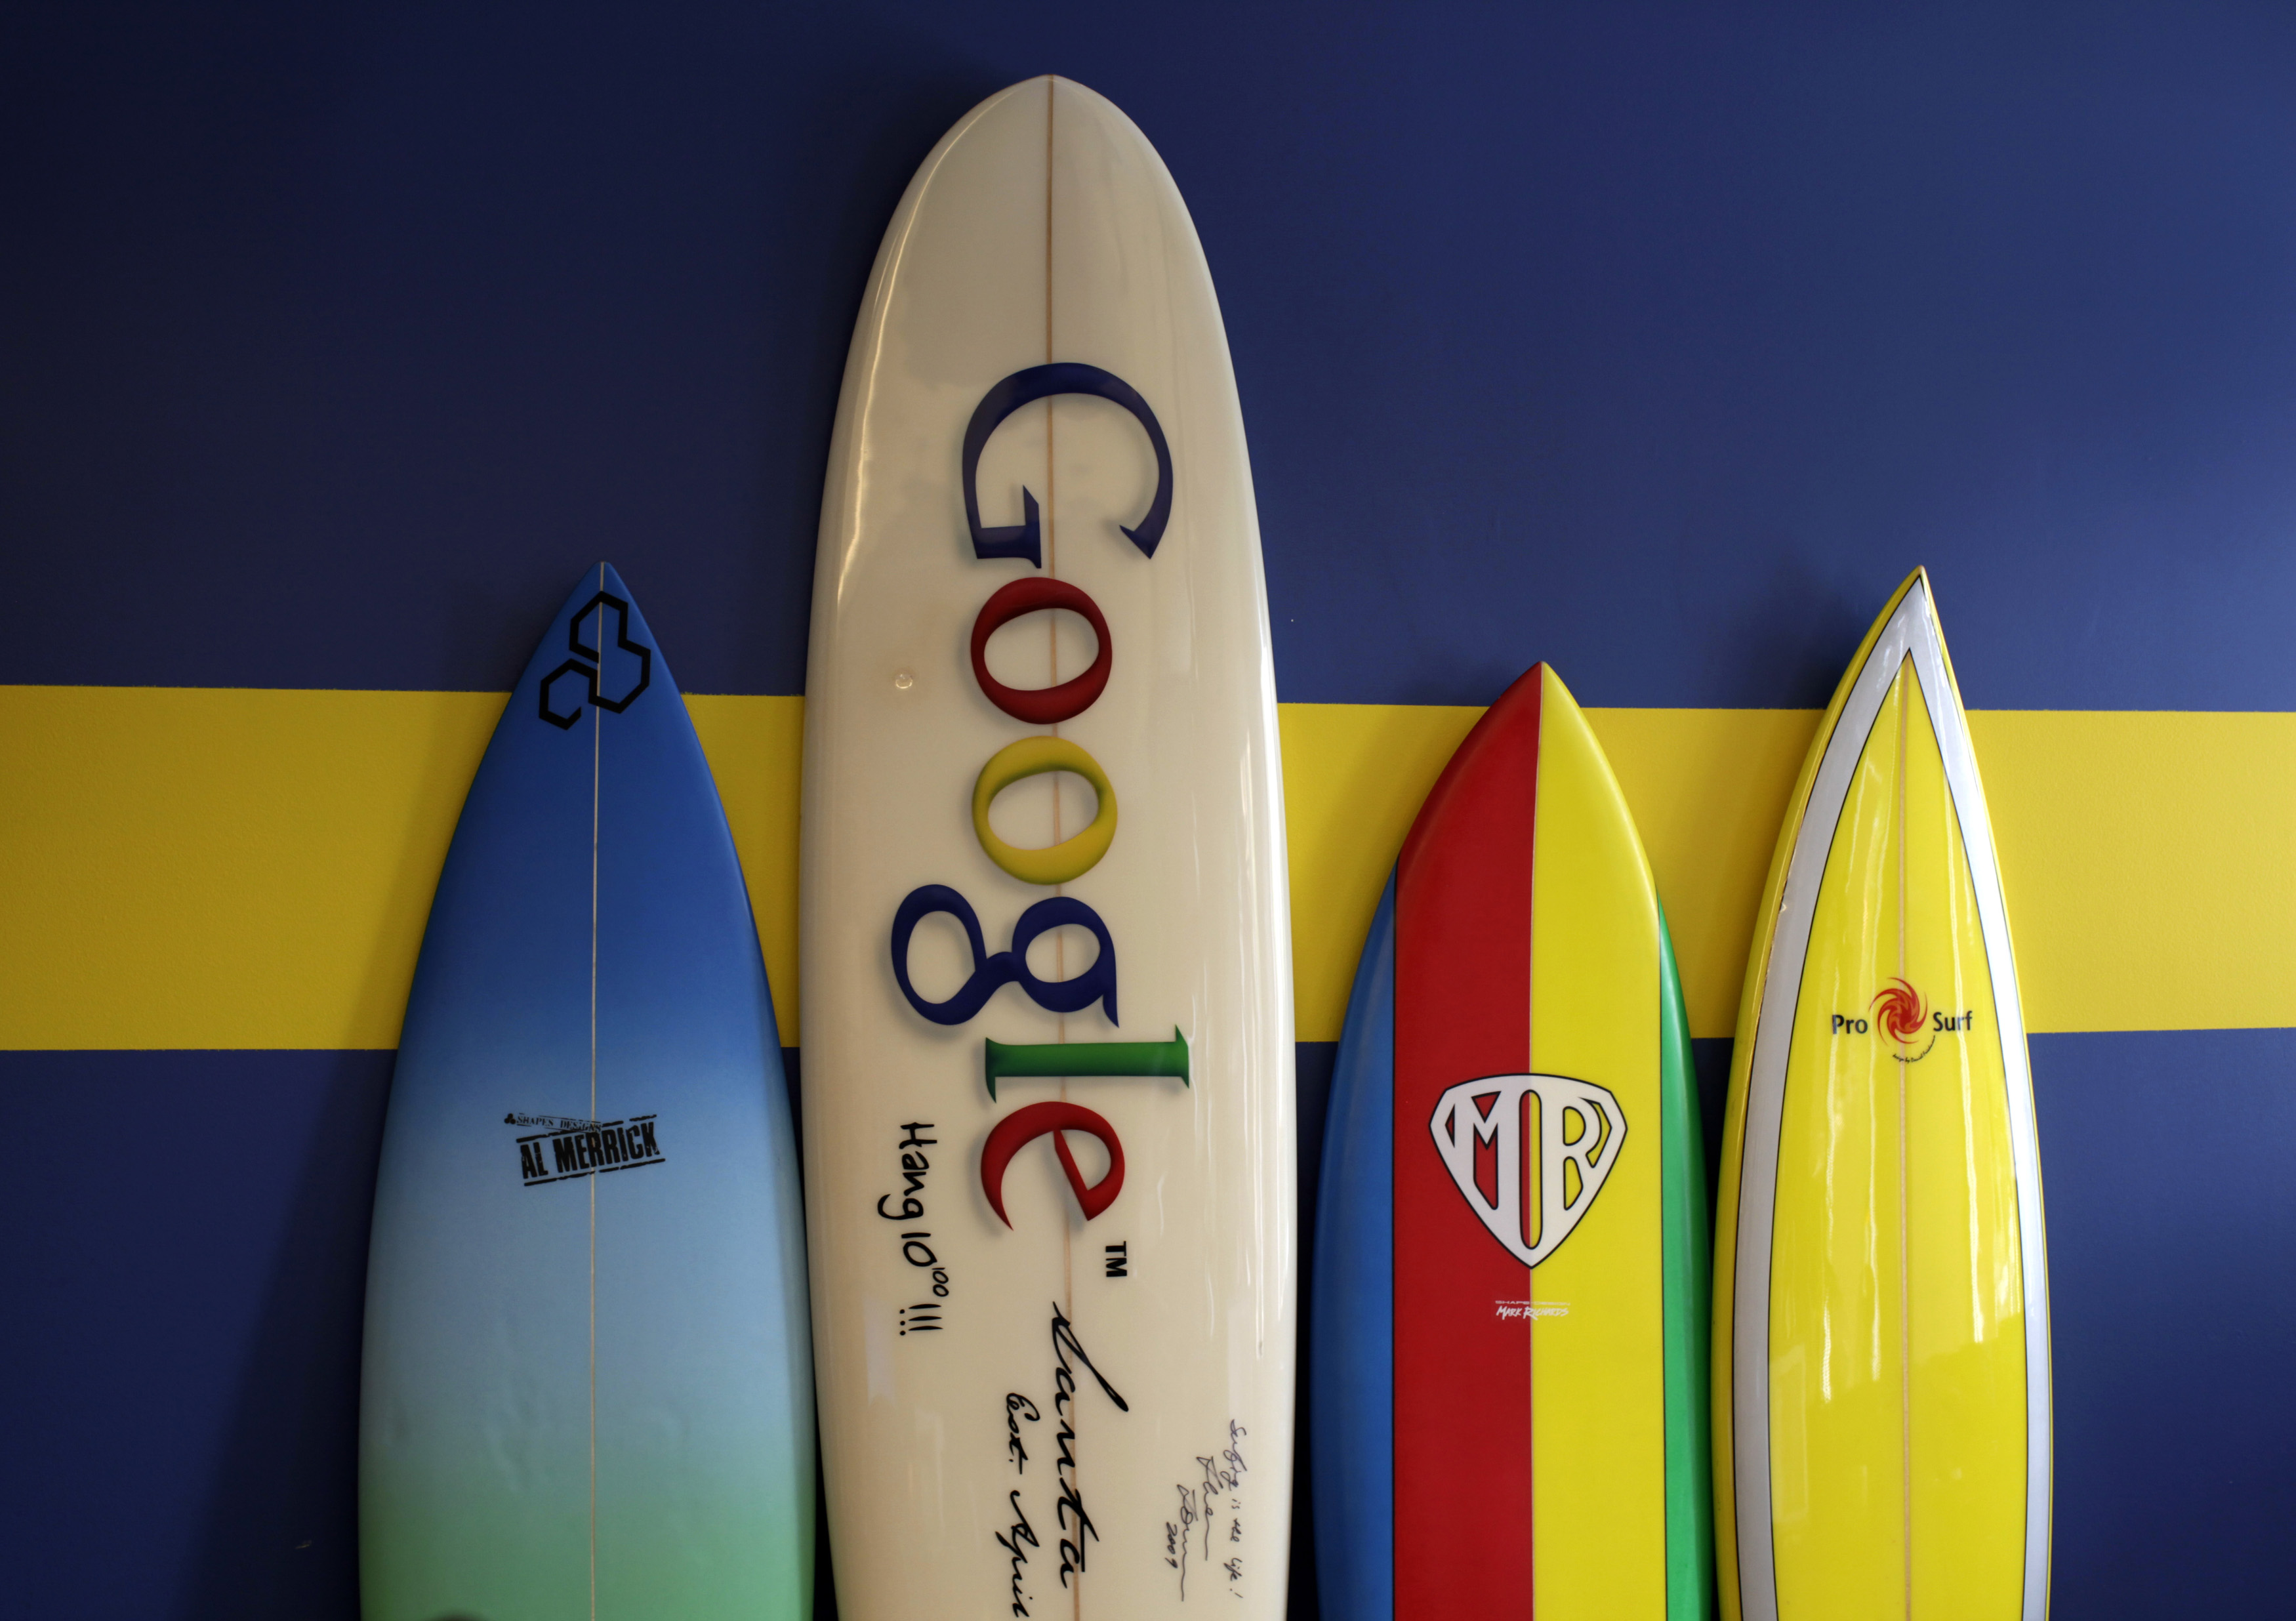 Surfboards lean against a wall at the Google office in Santa Monica, California, October 11, 2010. Google will report its third-quarter earnings on Thursday.  REUTERS/Lucy Nicholson (UNITED STATES - Tags: BUSINESS SCI TECH) - RTXTBOI